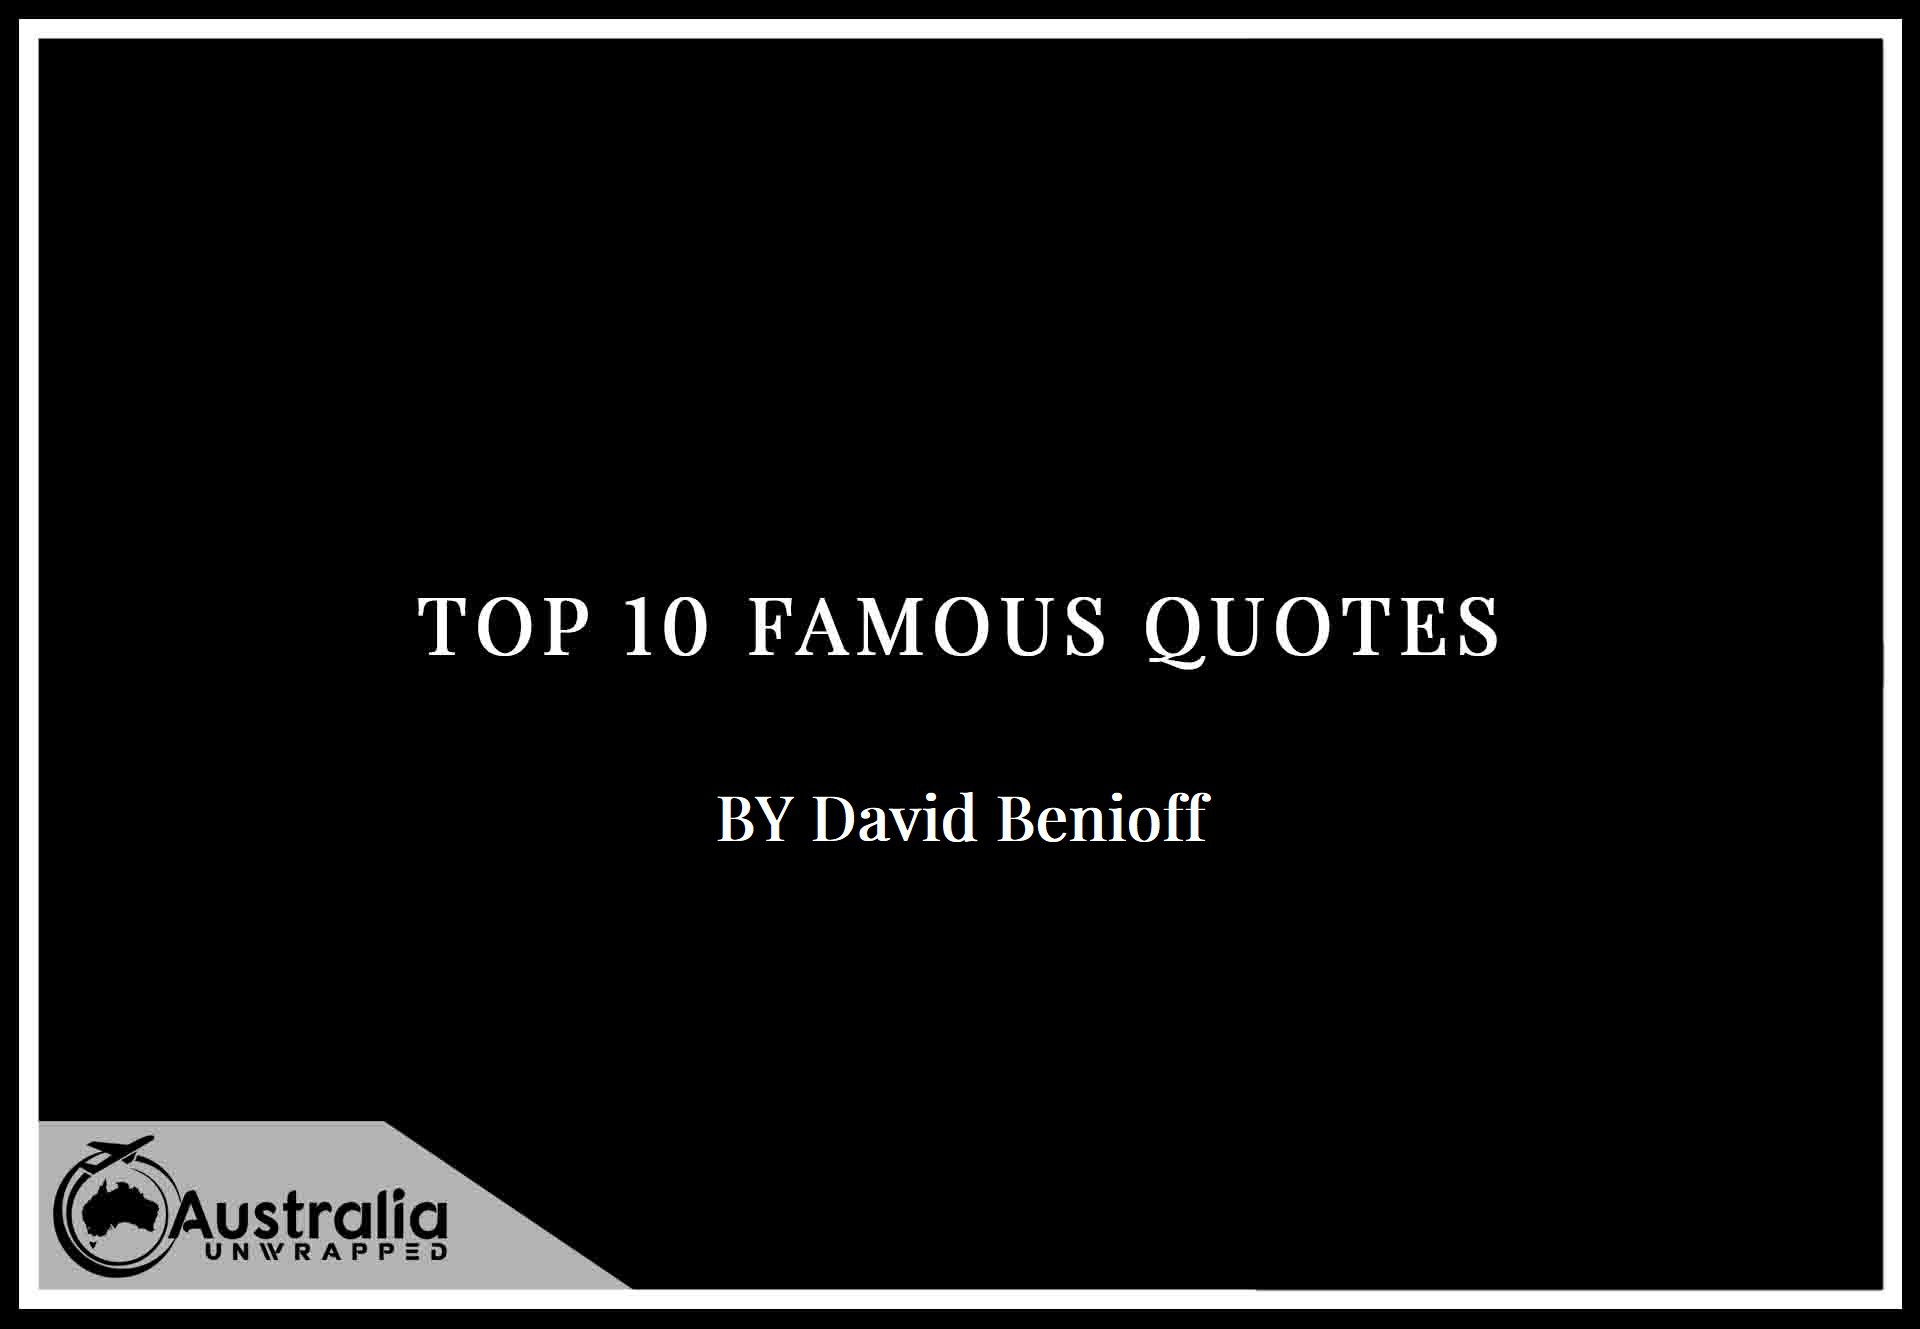 Top 10 Famous Quotes by Author David Benioff